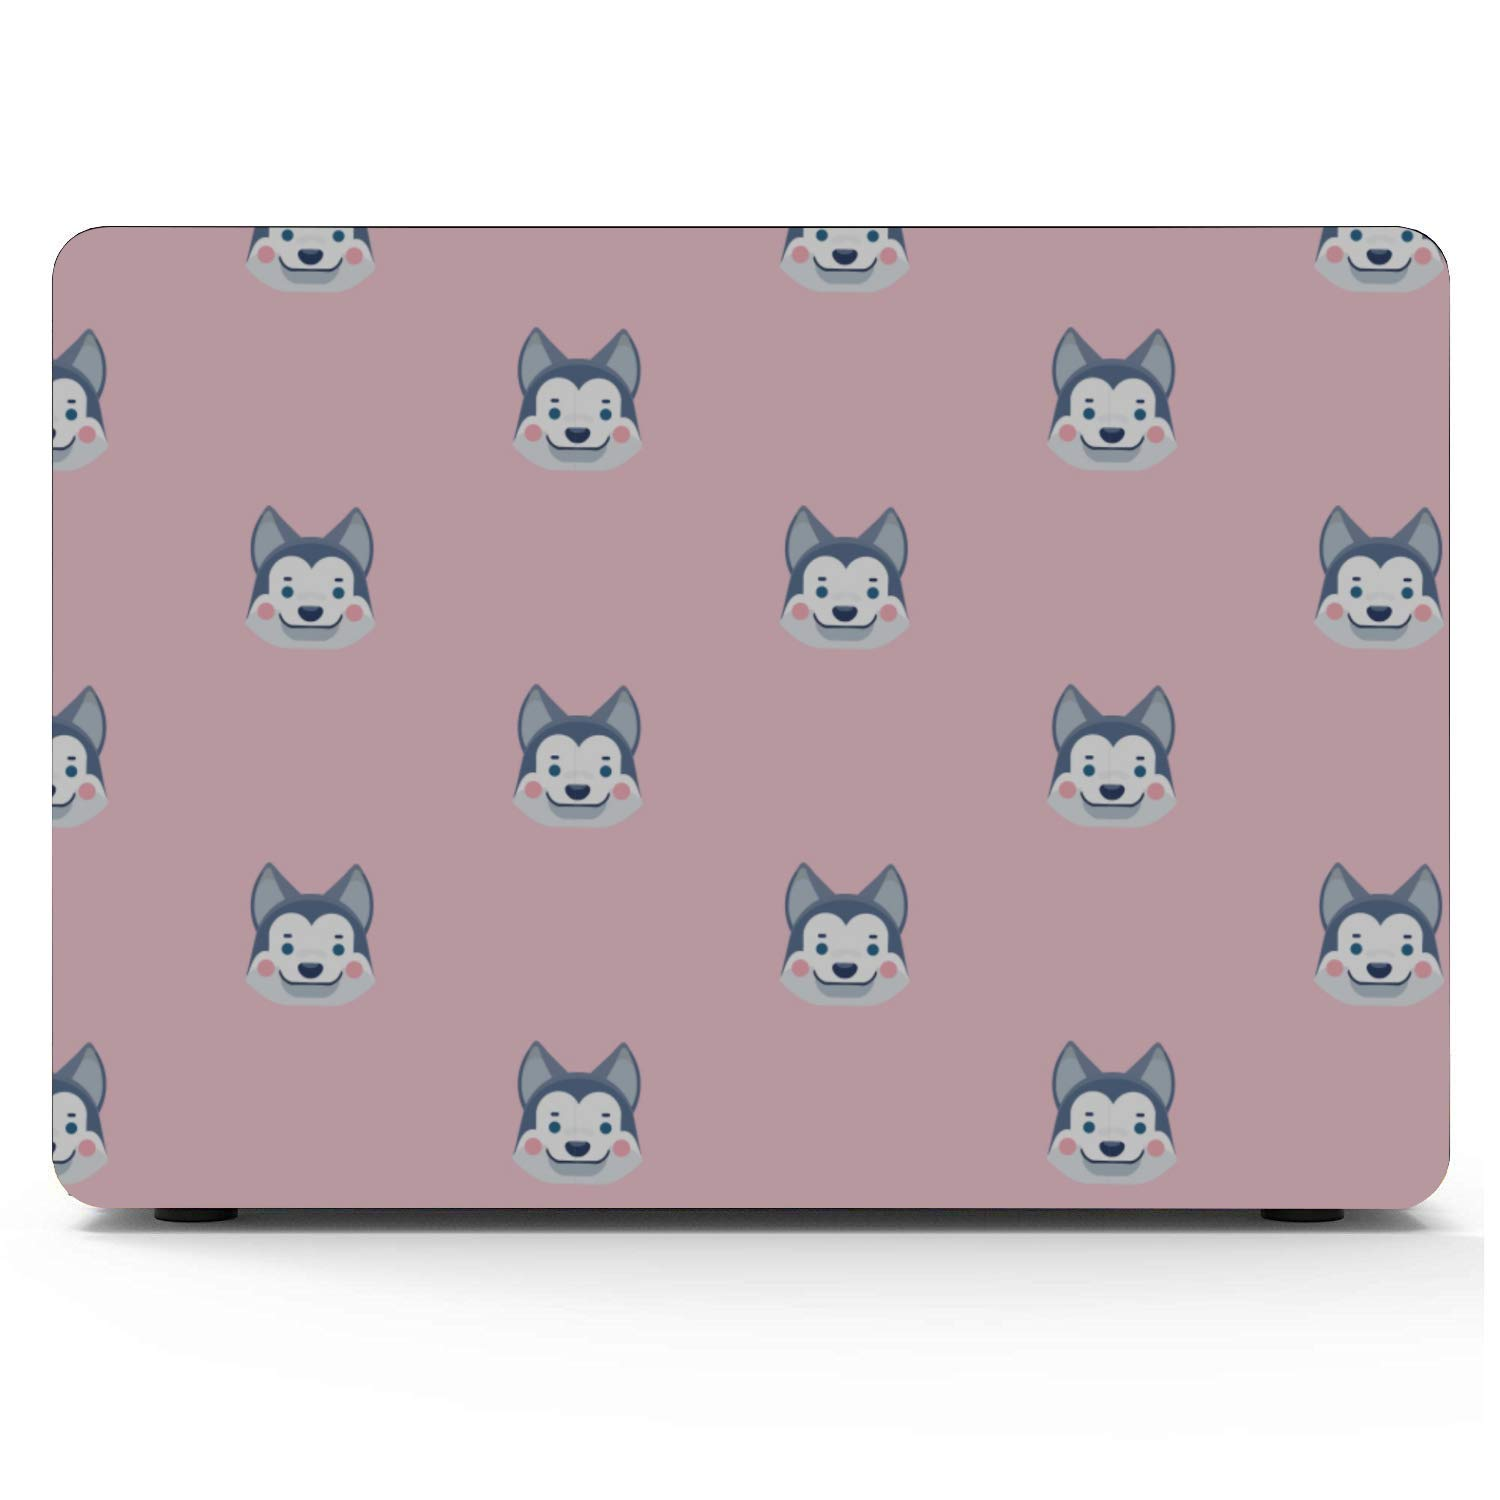 13 in Laptop Case Smart Cartoon Cute Pet Dog Husky Plastic Hard Shell Compatible Mac Air 11 Pro 13 15 Mac Covers Protection for MacBook 2016-2019 Version